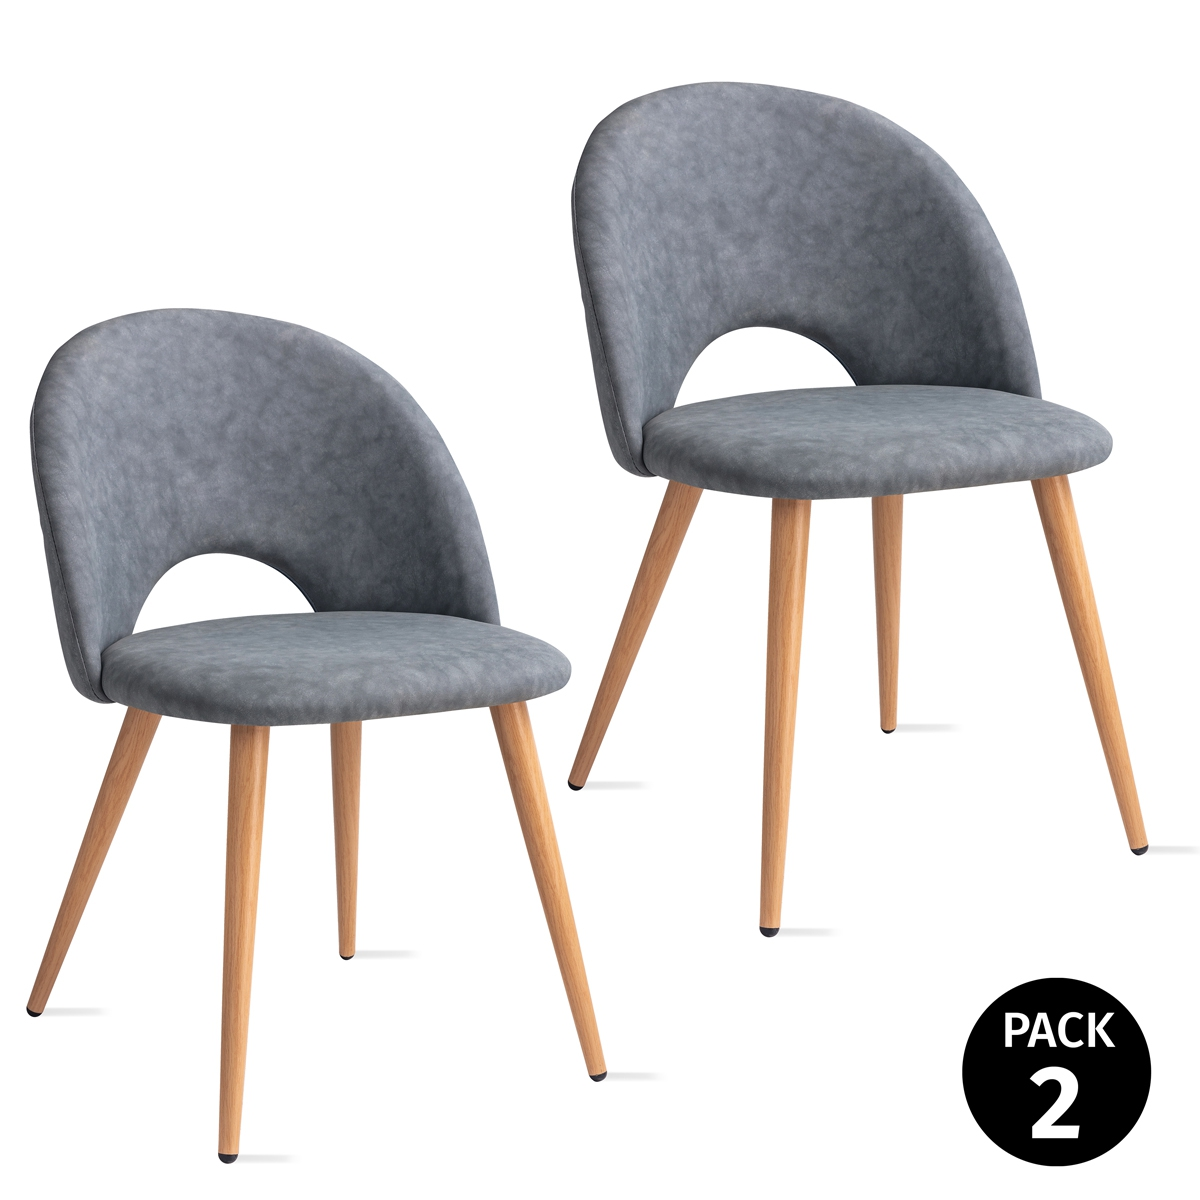 Pack 2 Chairs For Dining Room Room Design Nordico Gray Color MOON Model 49x46x76cm